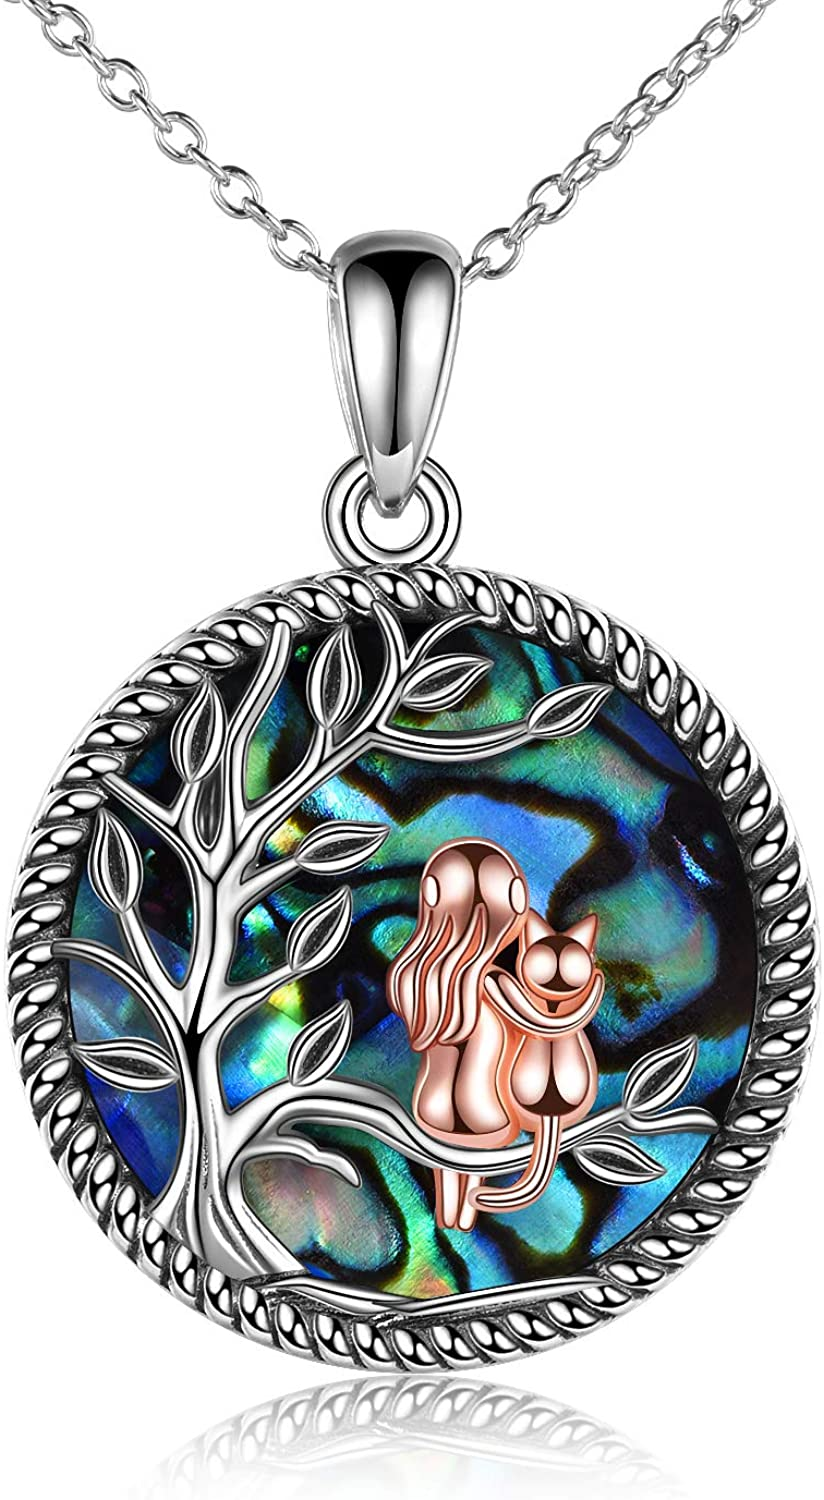 ONEFINITY Sterling Silver Tree of Life Cat Necklace with Abalone Shell Best Friend Cat Pendant Jewelry Birthday Gifts for Women Wife Girlfriend Cat Lovers